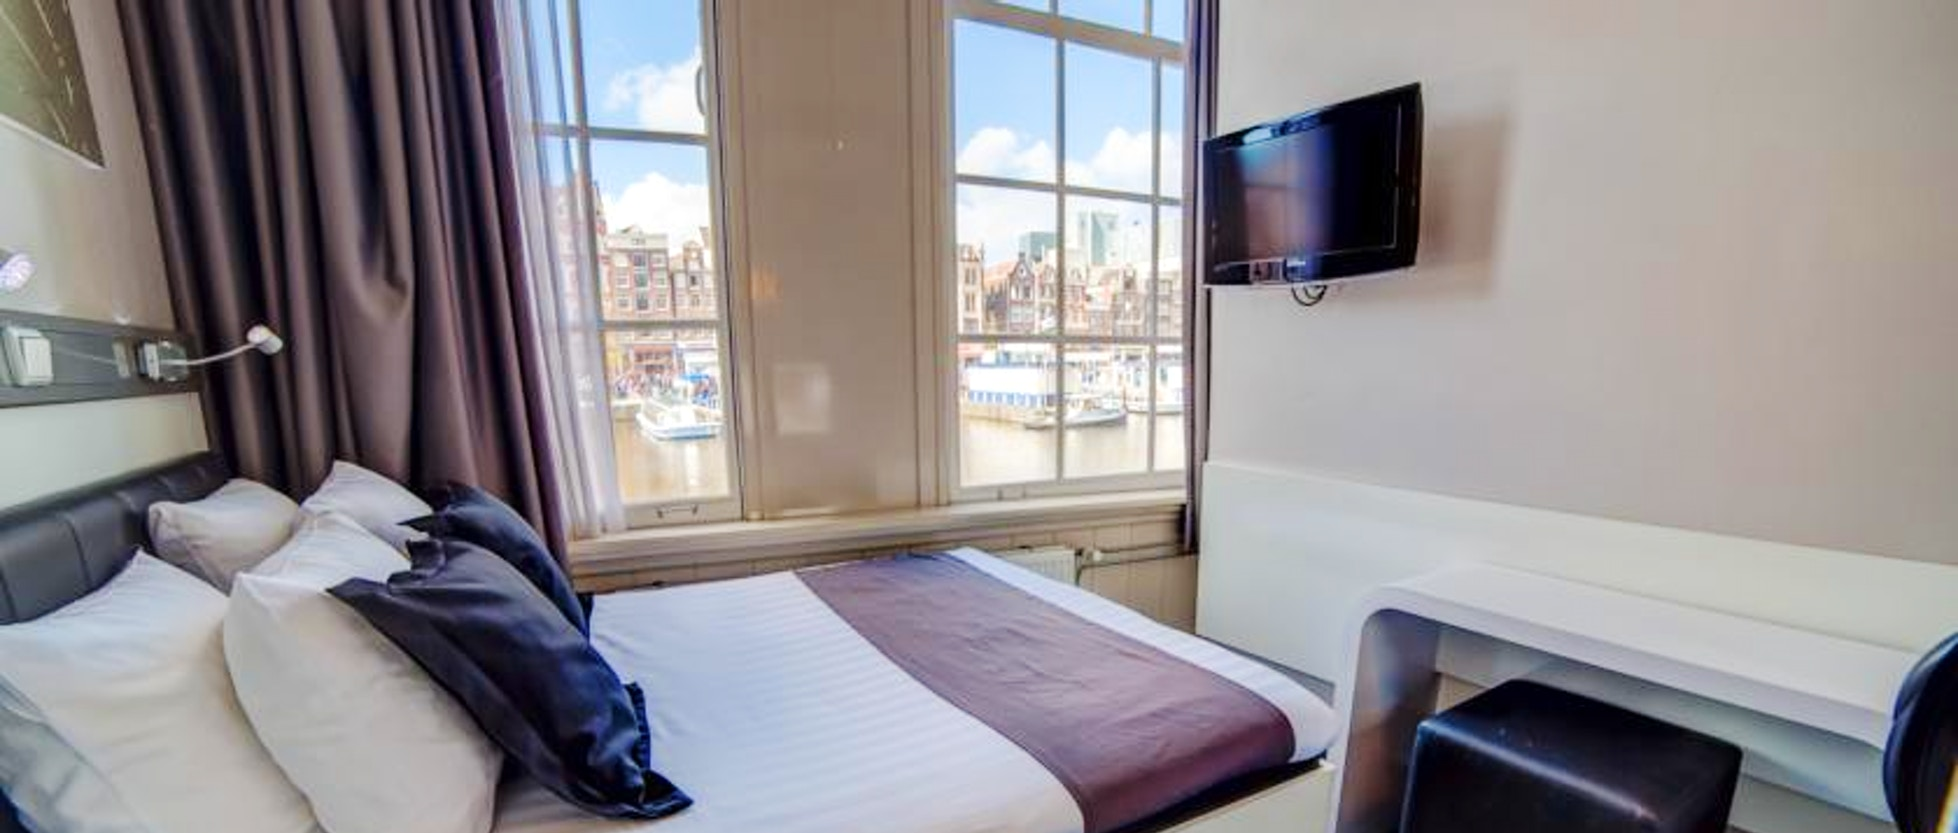 8 hotel gay friendly al centro di amsterdam for Dove dormire a amsterdam